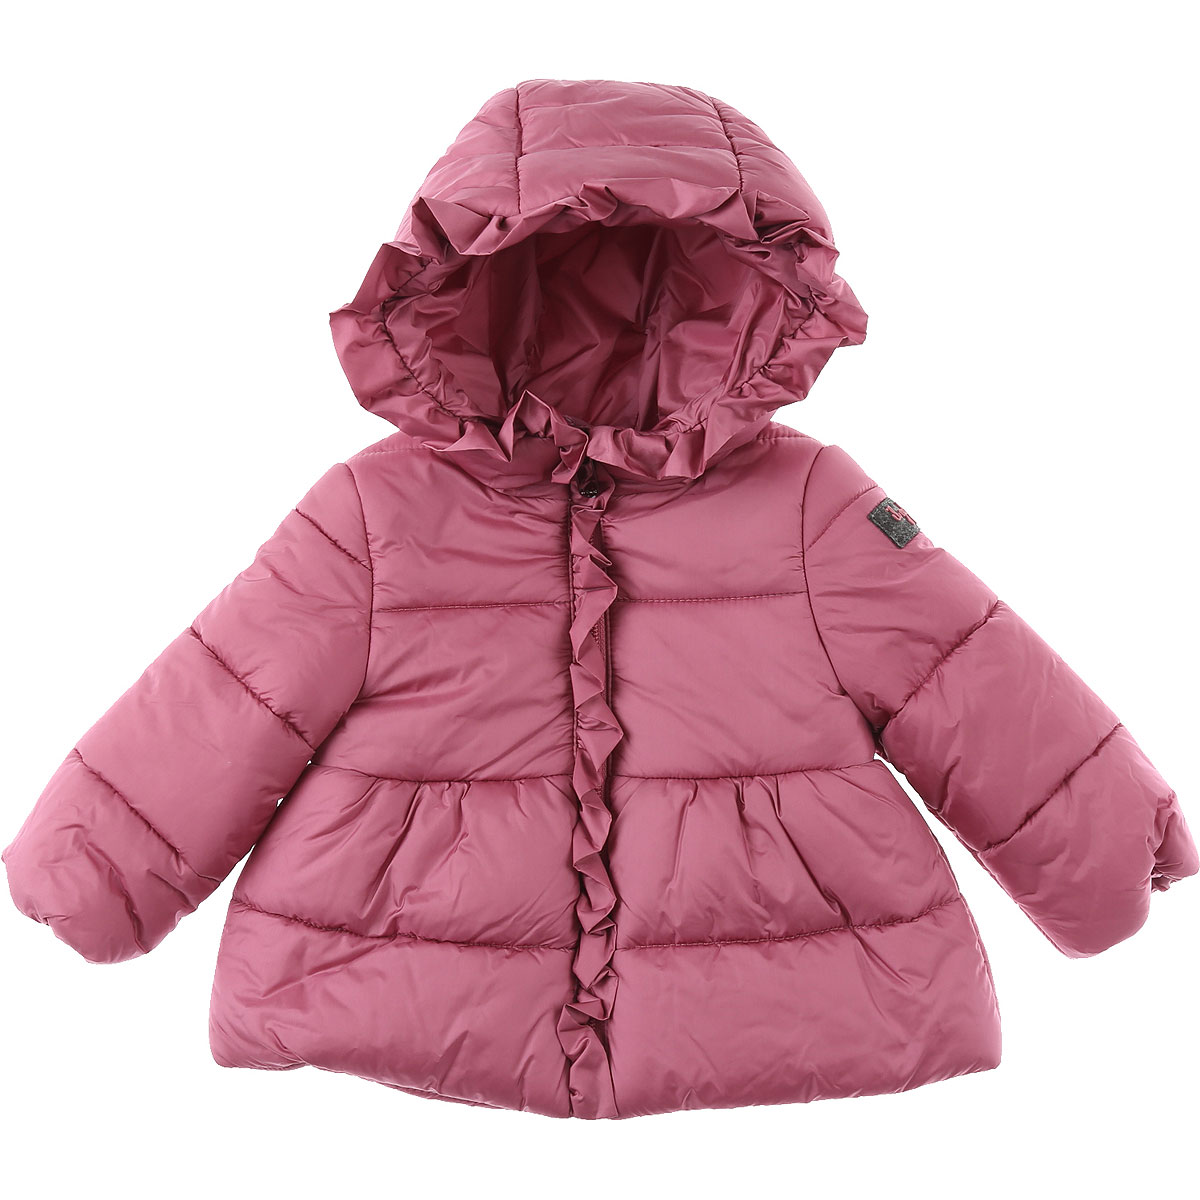 Il Gufo Baby Down Jacket for Girls On Sale, Pink, polyamide, 2019, 12M 18M 2Y 3Y 6M 9M